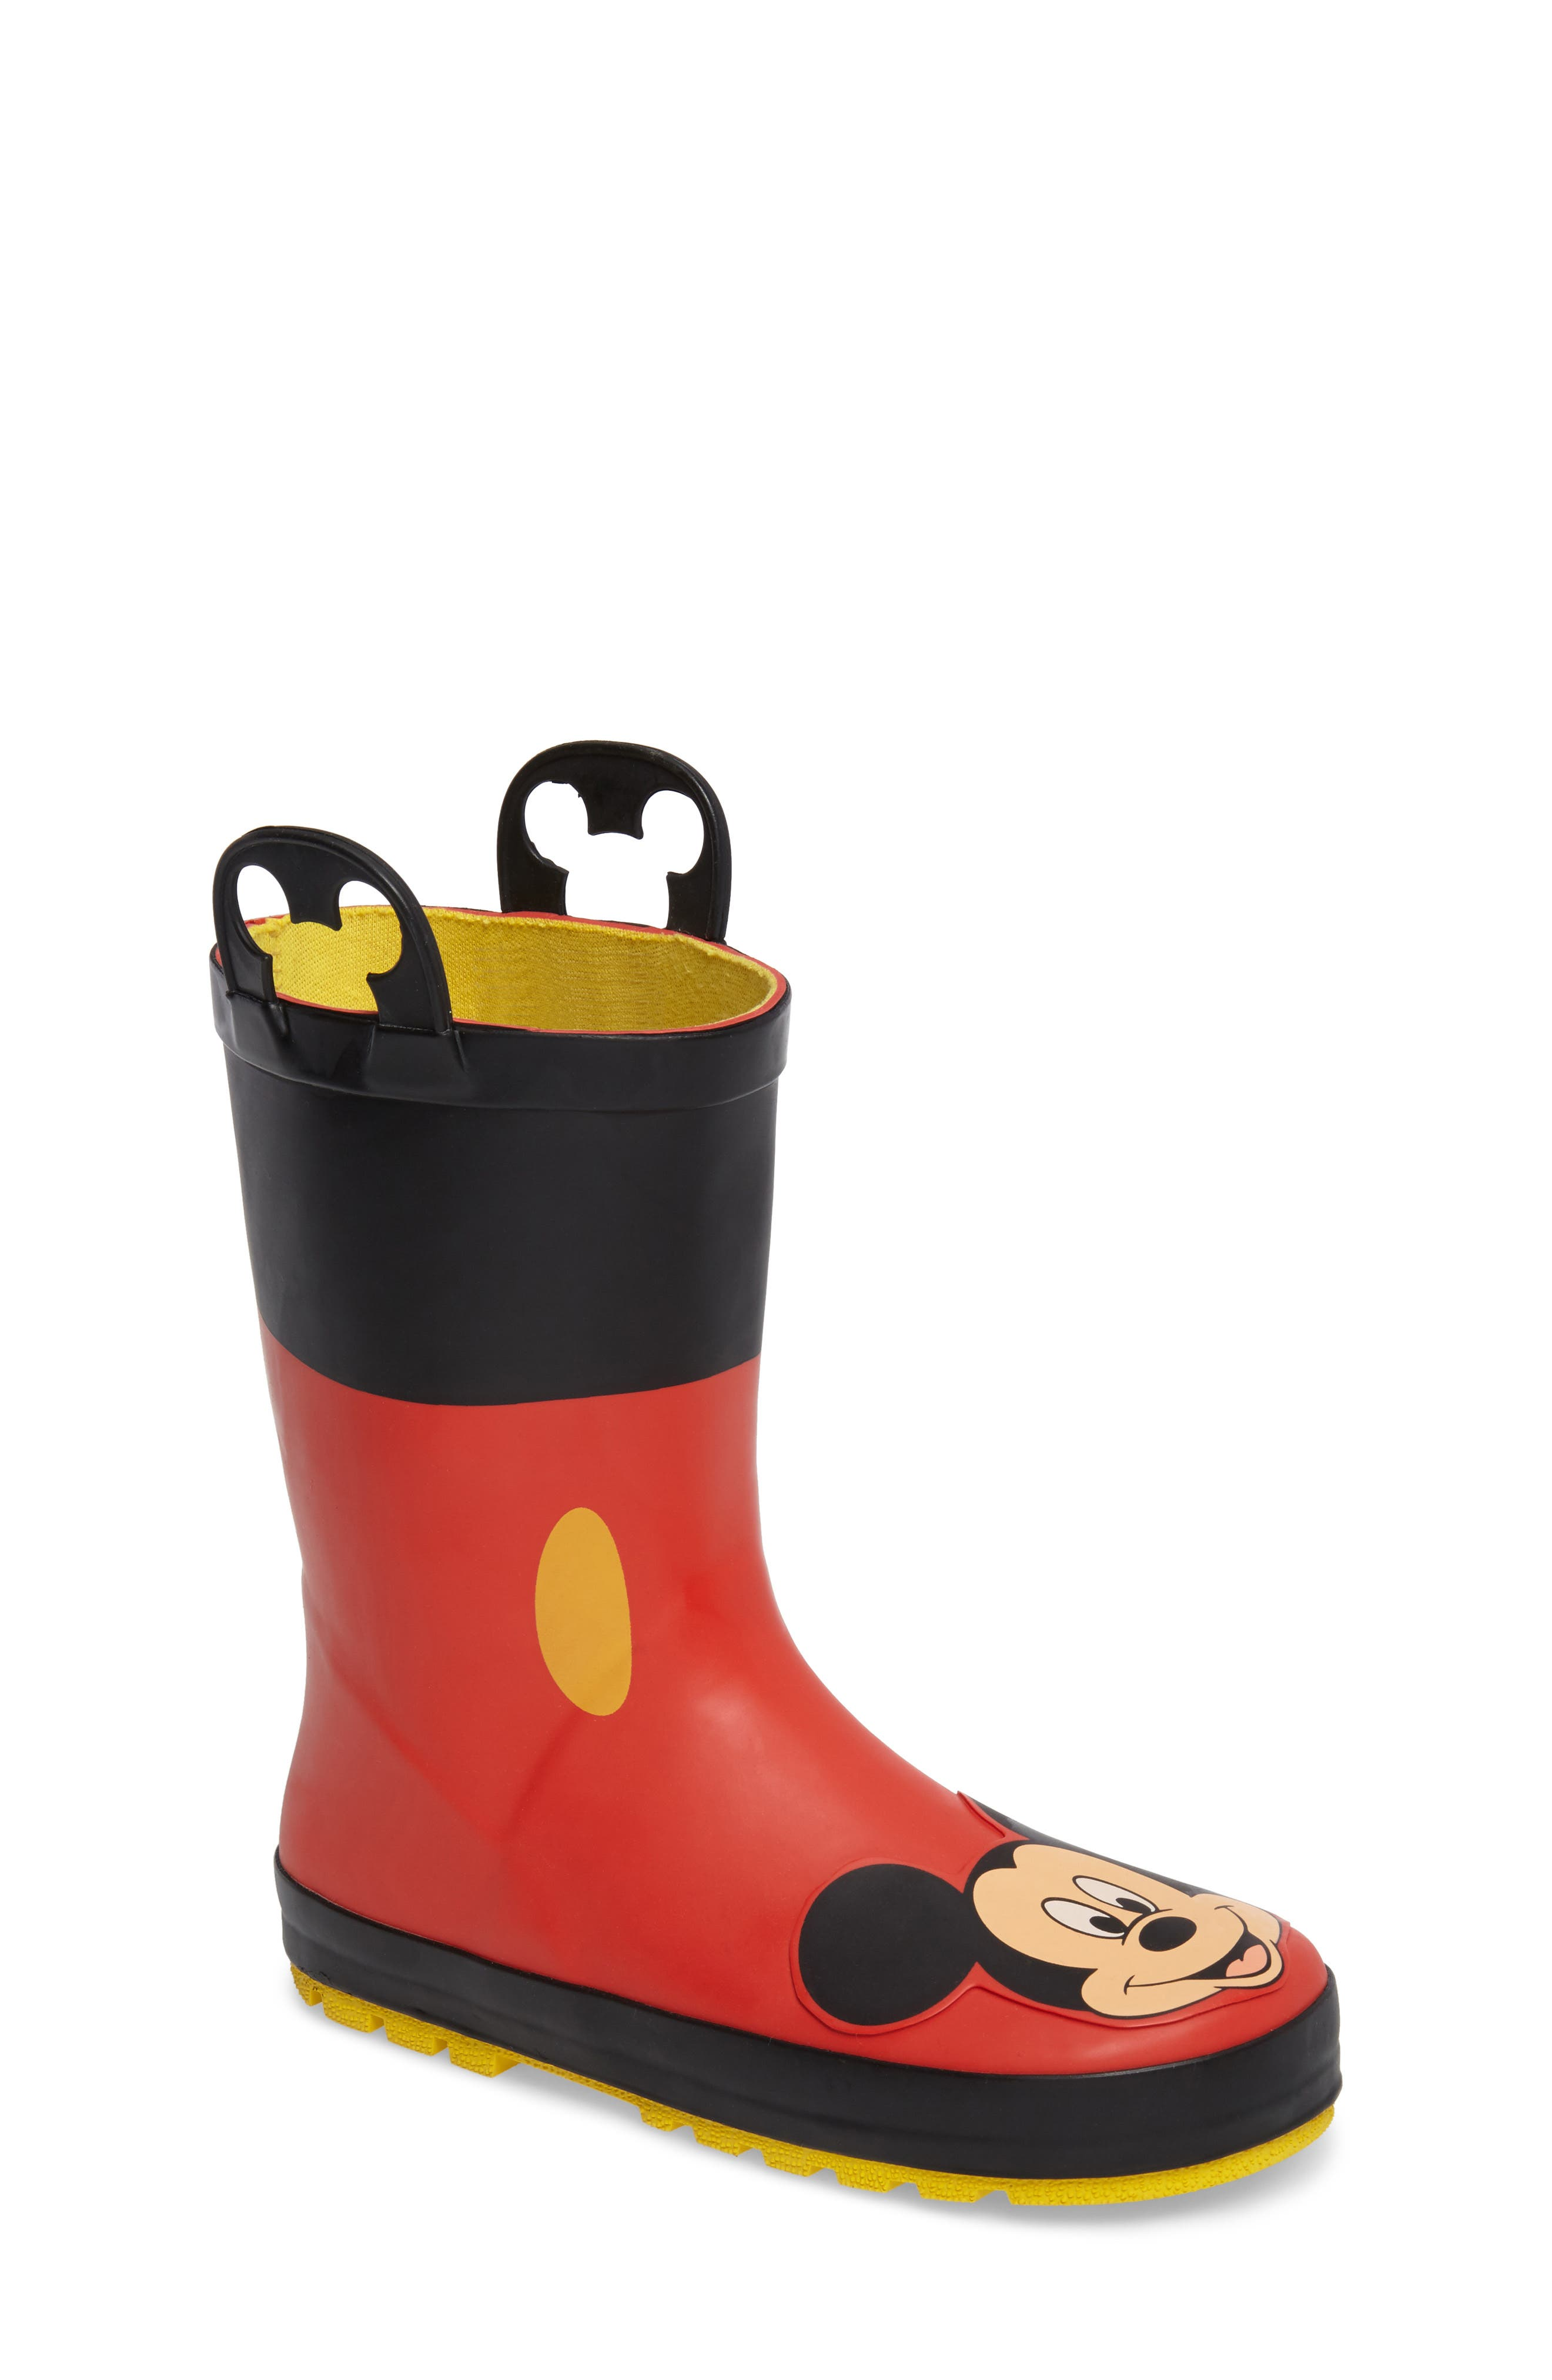 Main Image - Western Chief Mickey Mouse Rain Boot (Walker, Toddler, Little Kid & Big Kid)